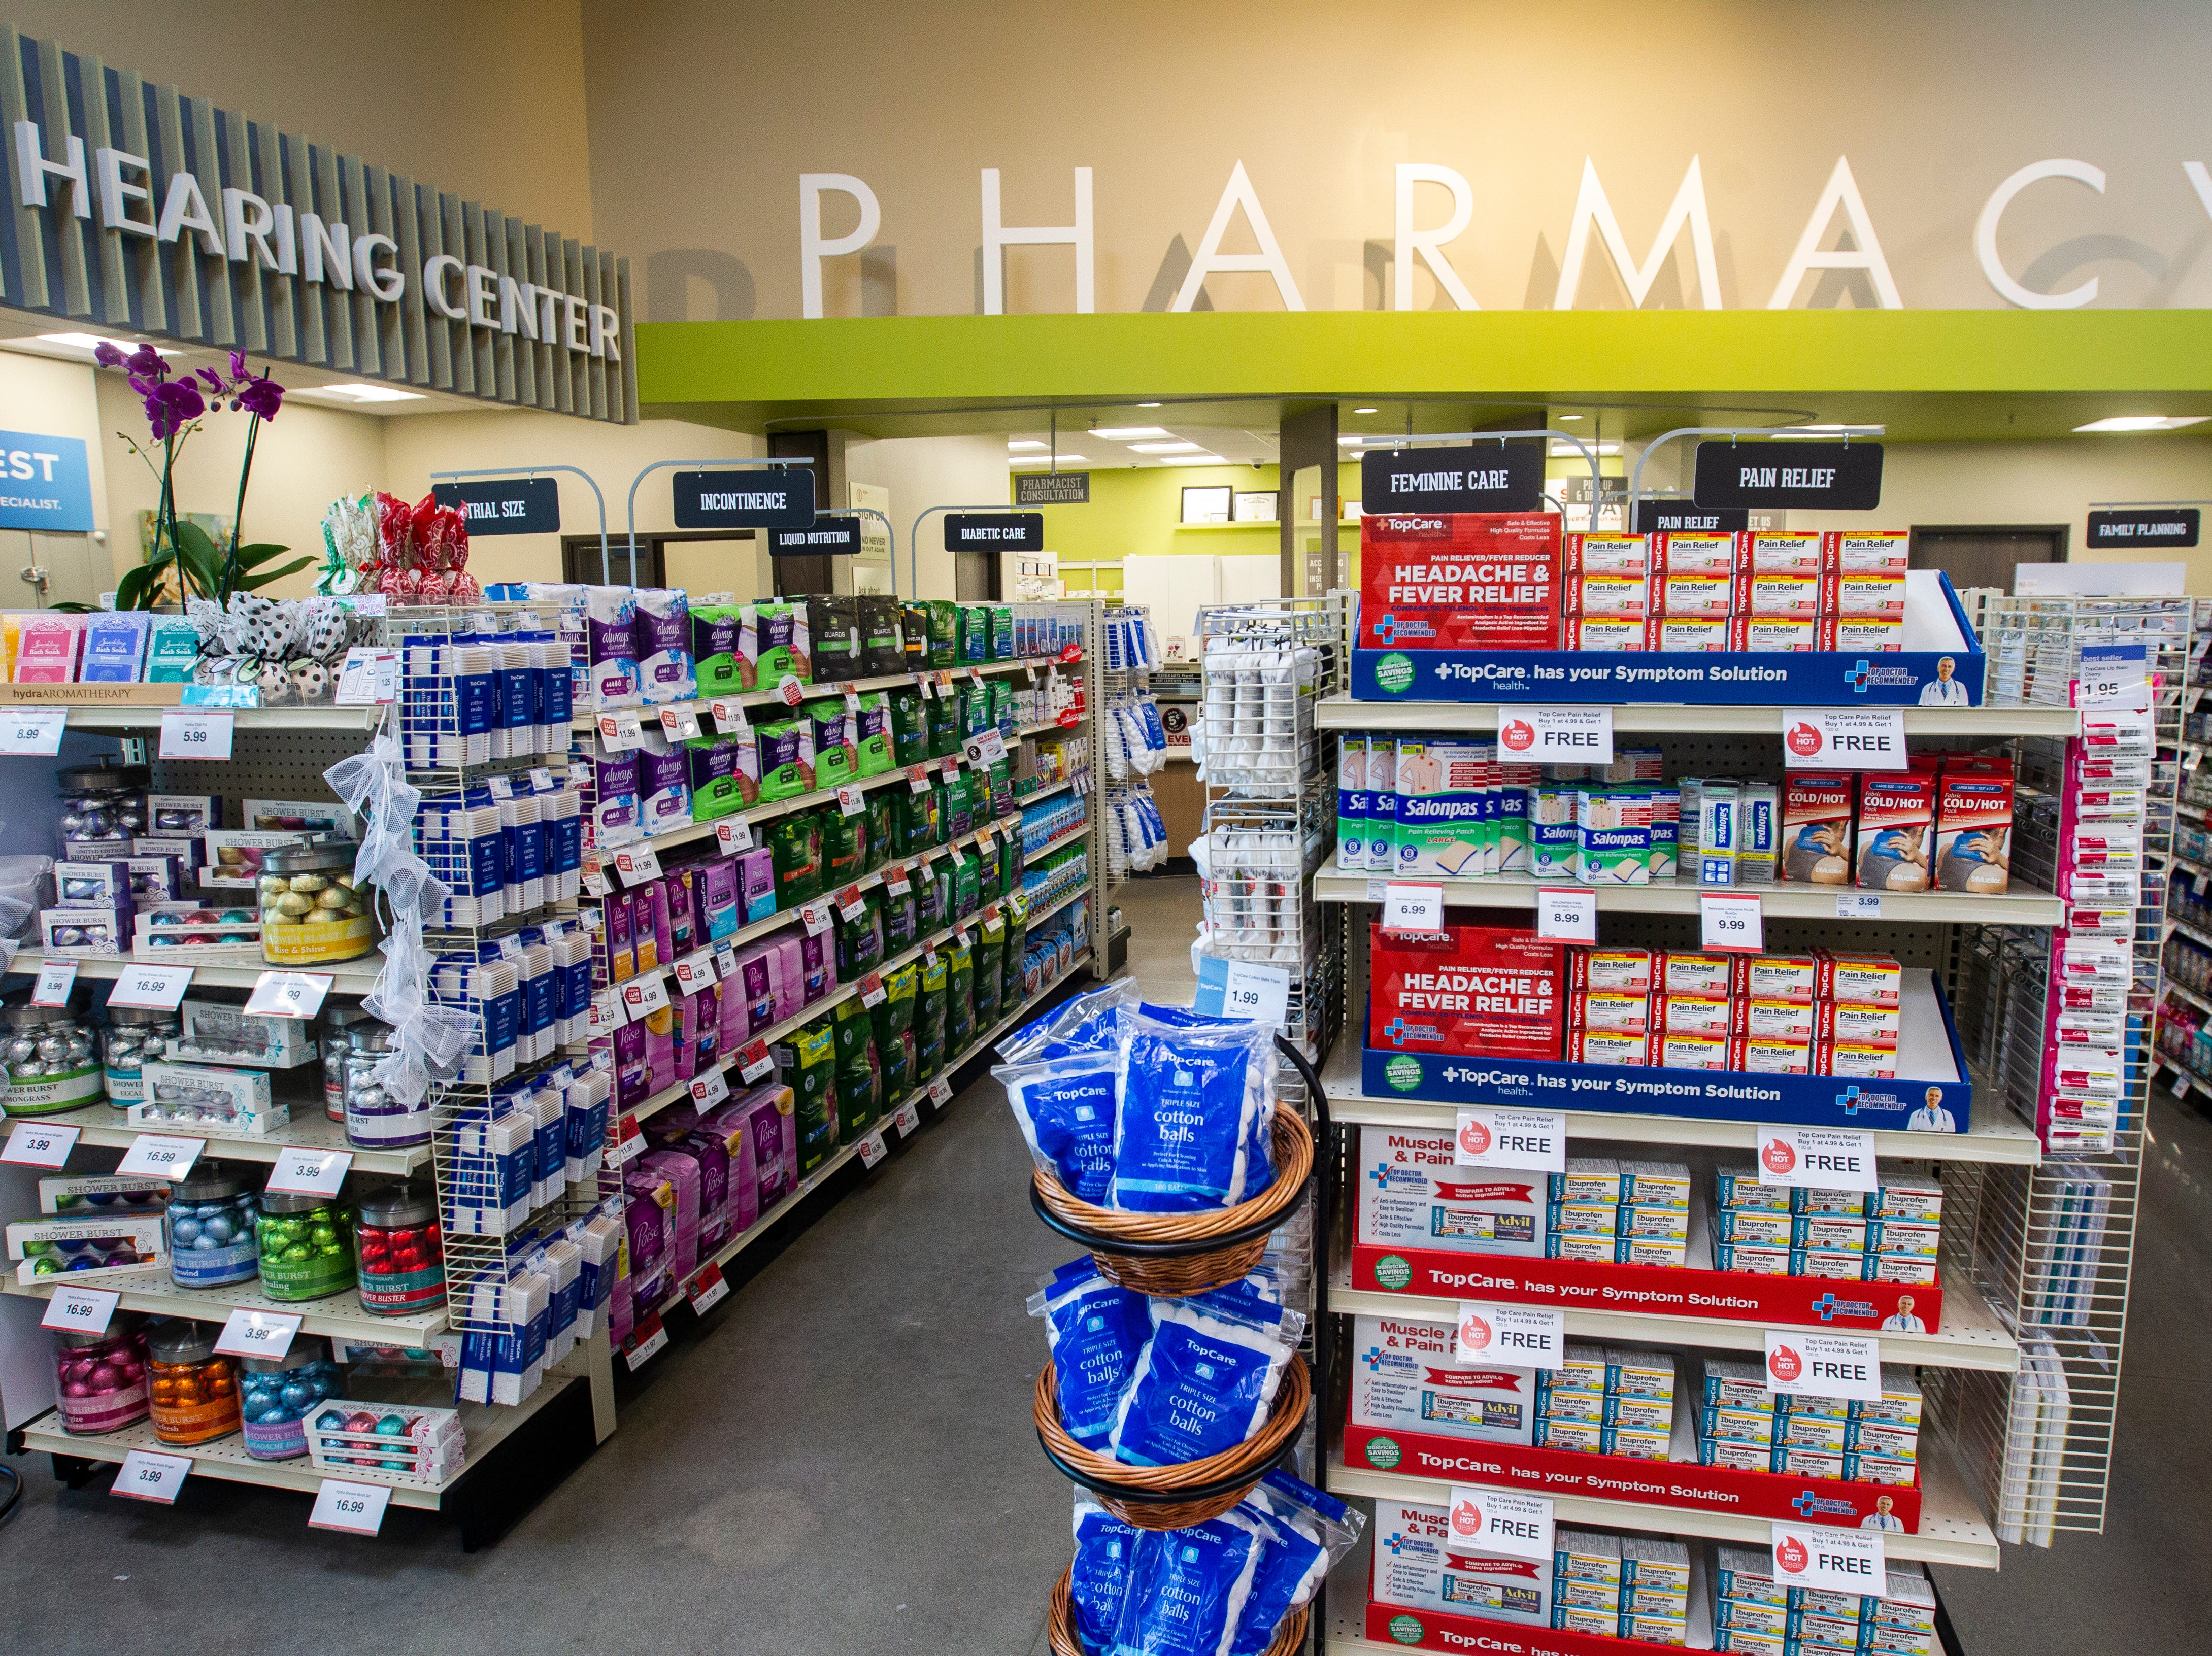 Pharmacy and hearing center departments are seen inside a new Hy-Vee on Monday, Oct. 15, 2018, along Crosspark Road in Coralville, Iowa.